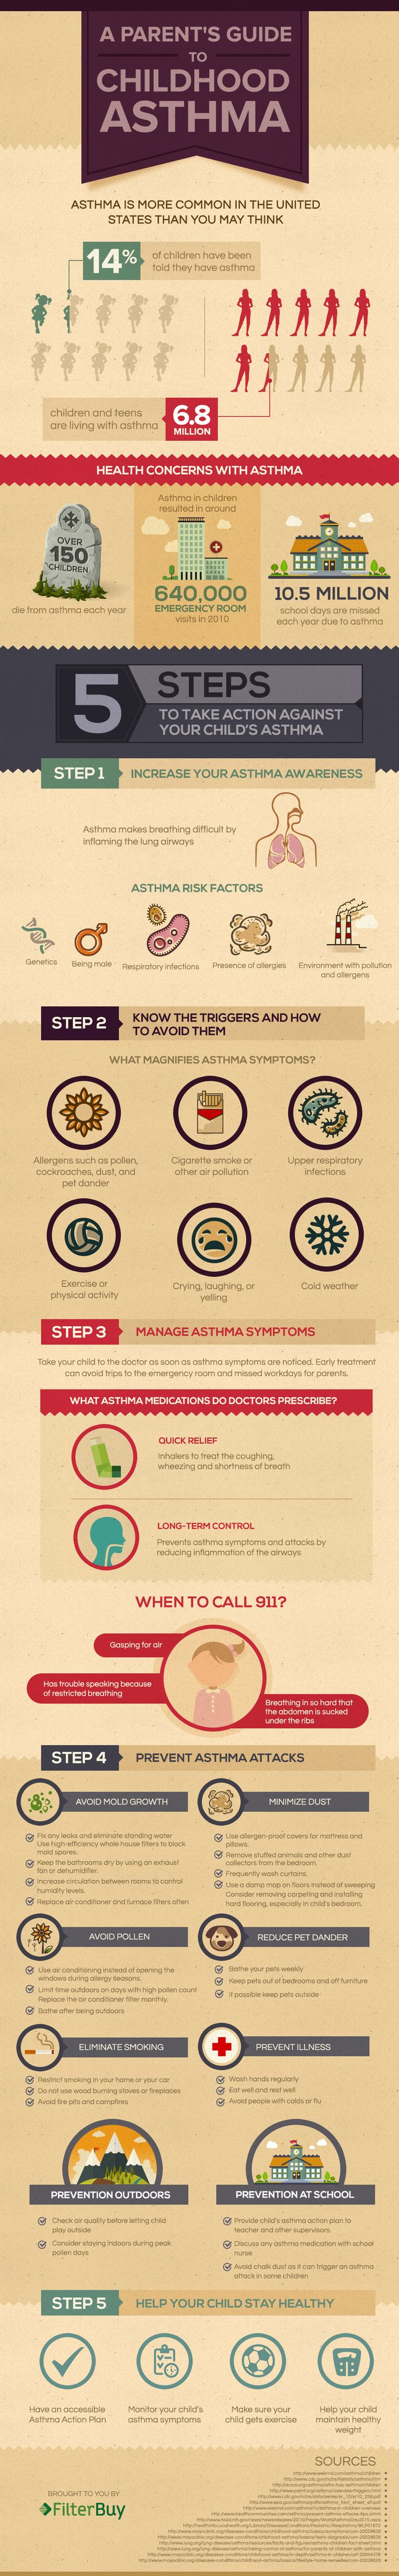 Childhood Asthma Infographic